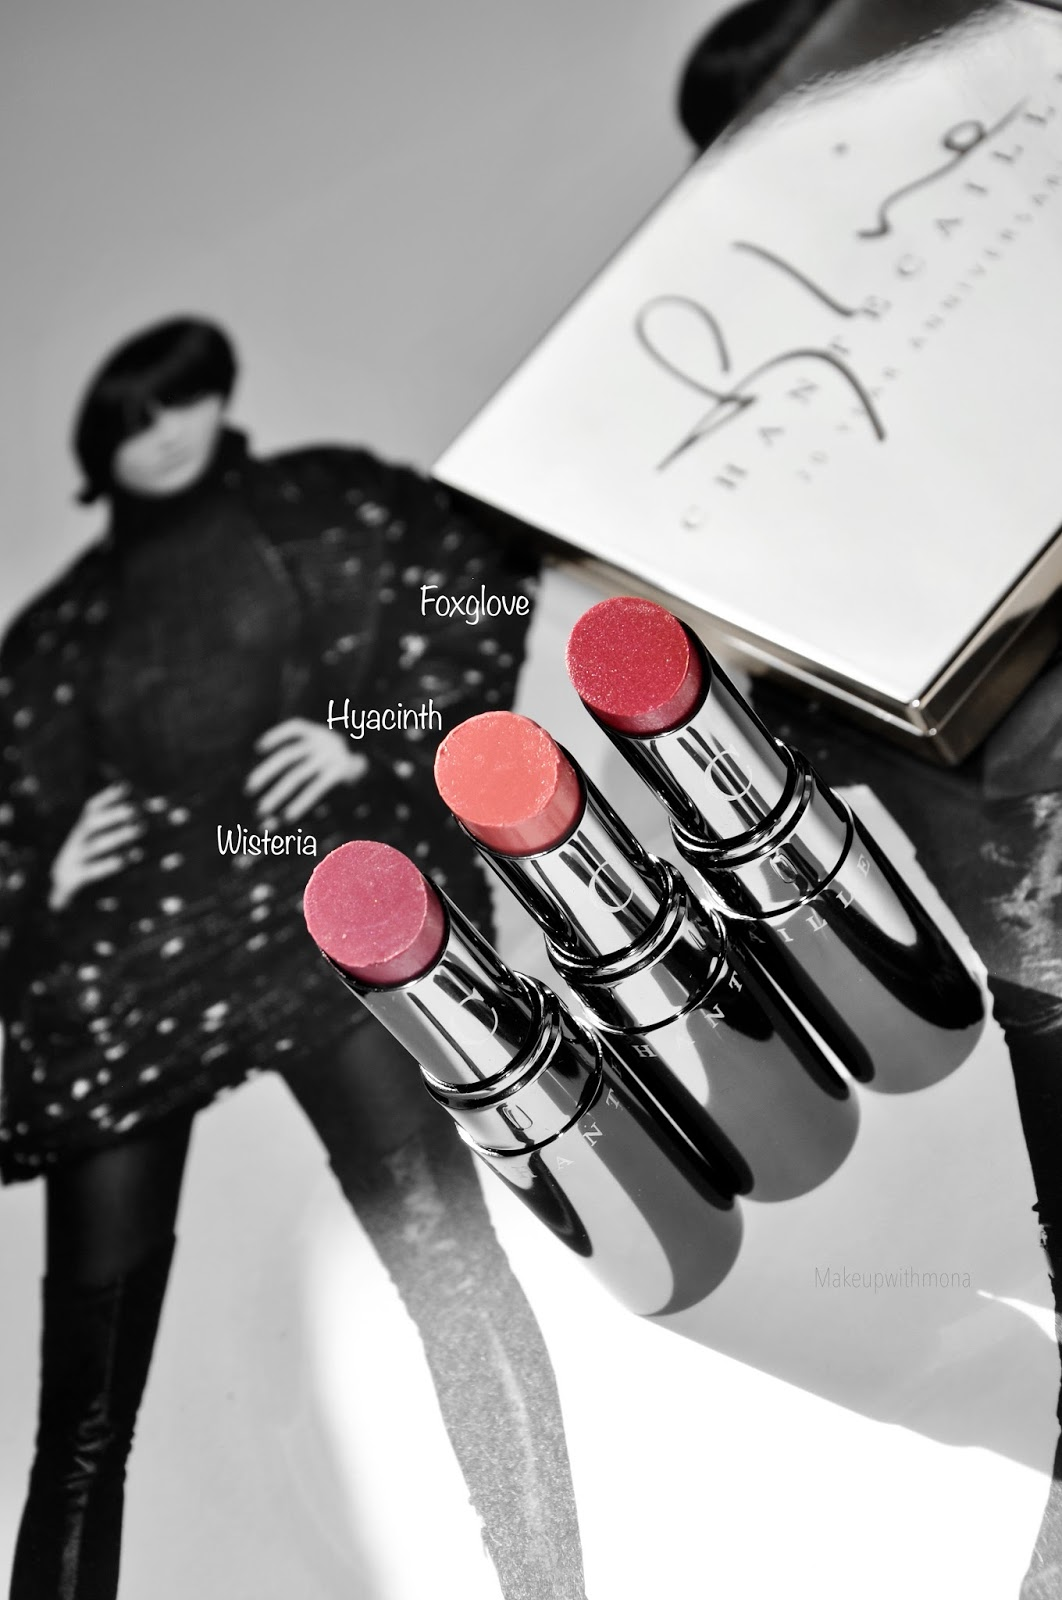 Chantecaille Lip Chic Lip Color Swatches